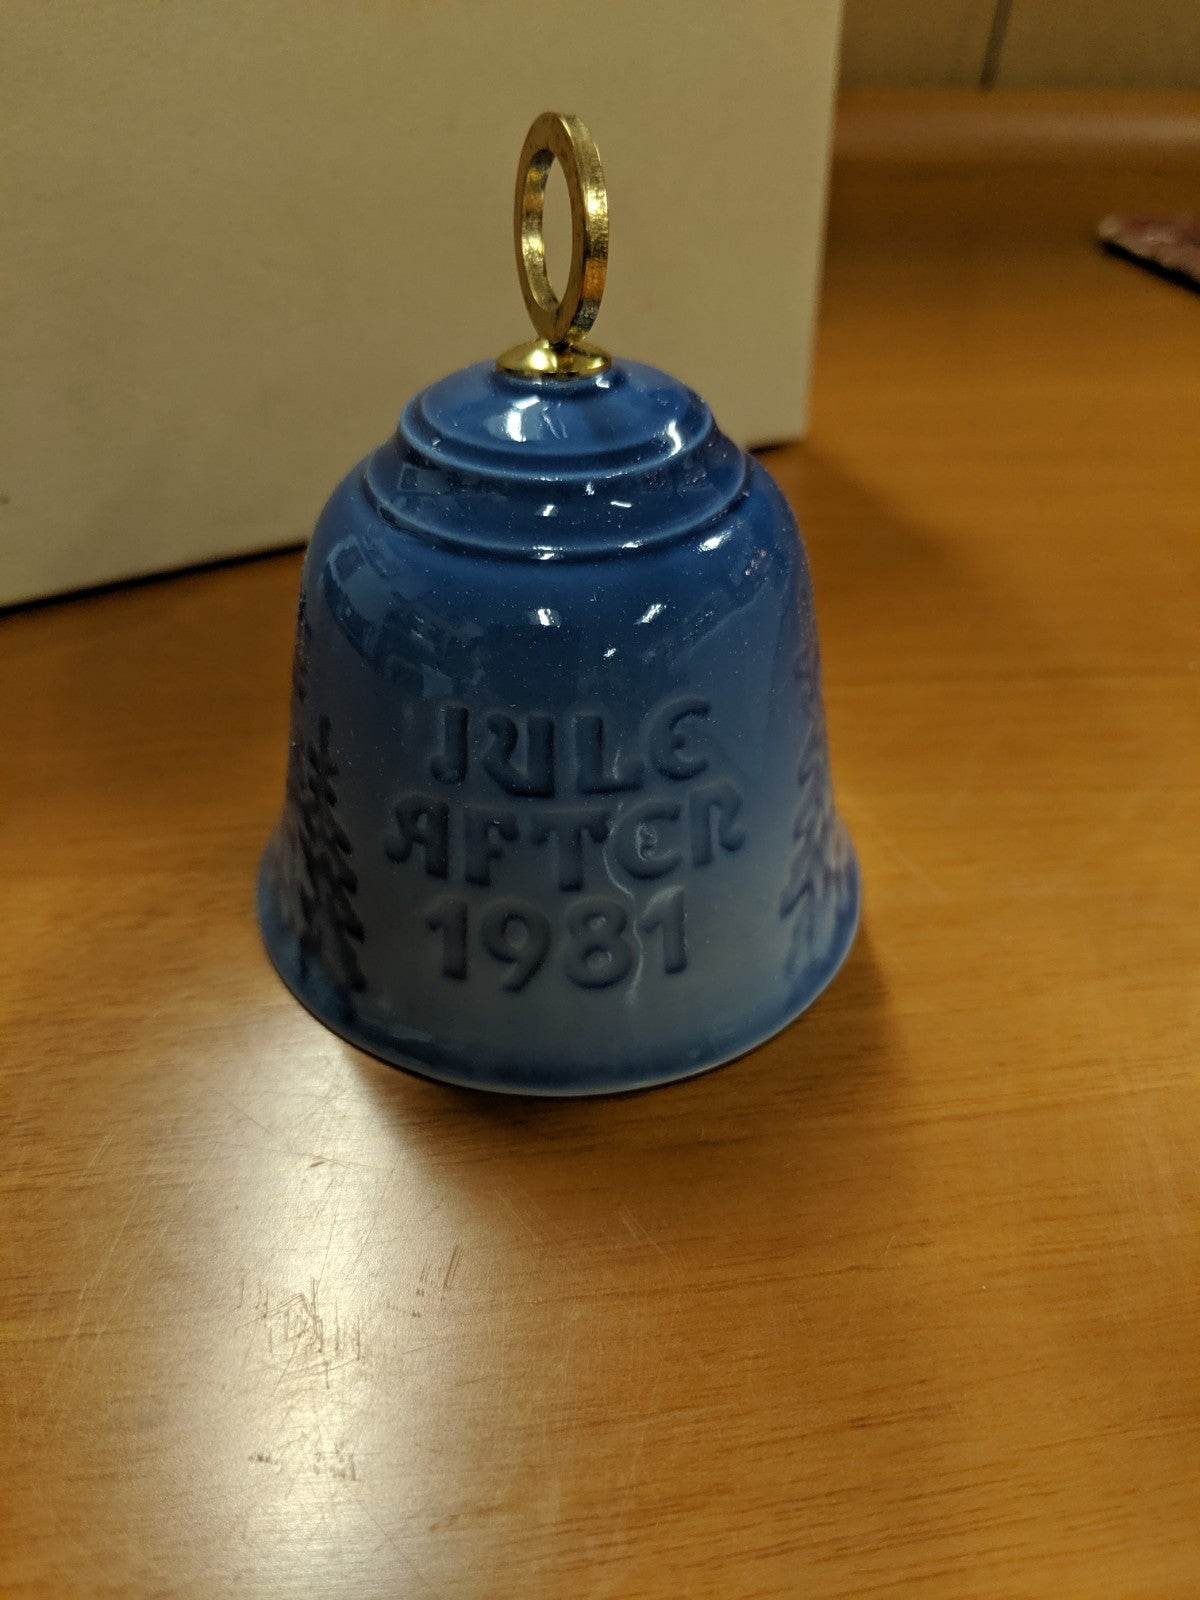 Bing & Grondahl Christmas Bell Jule After 1981